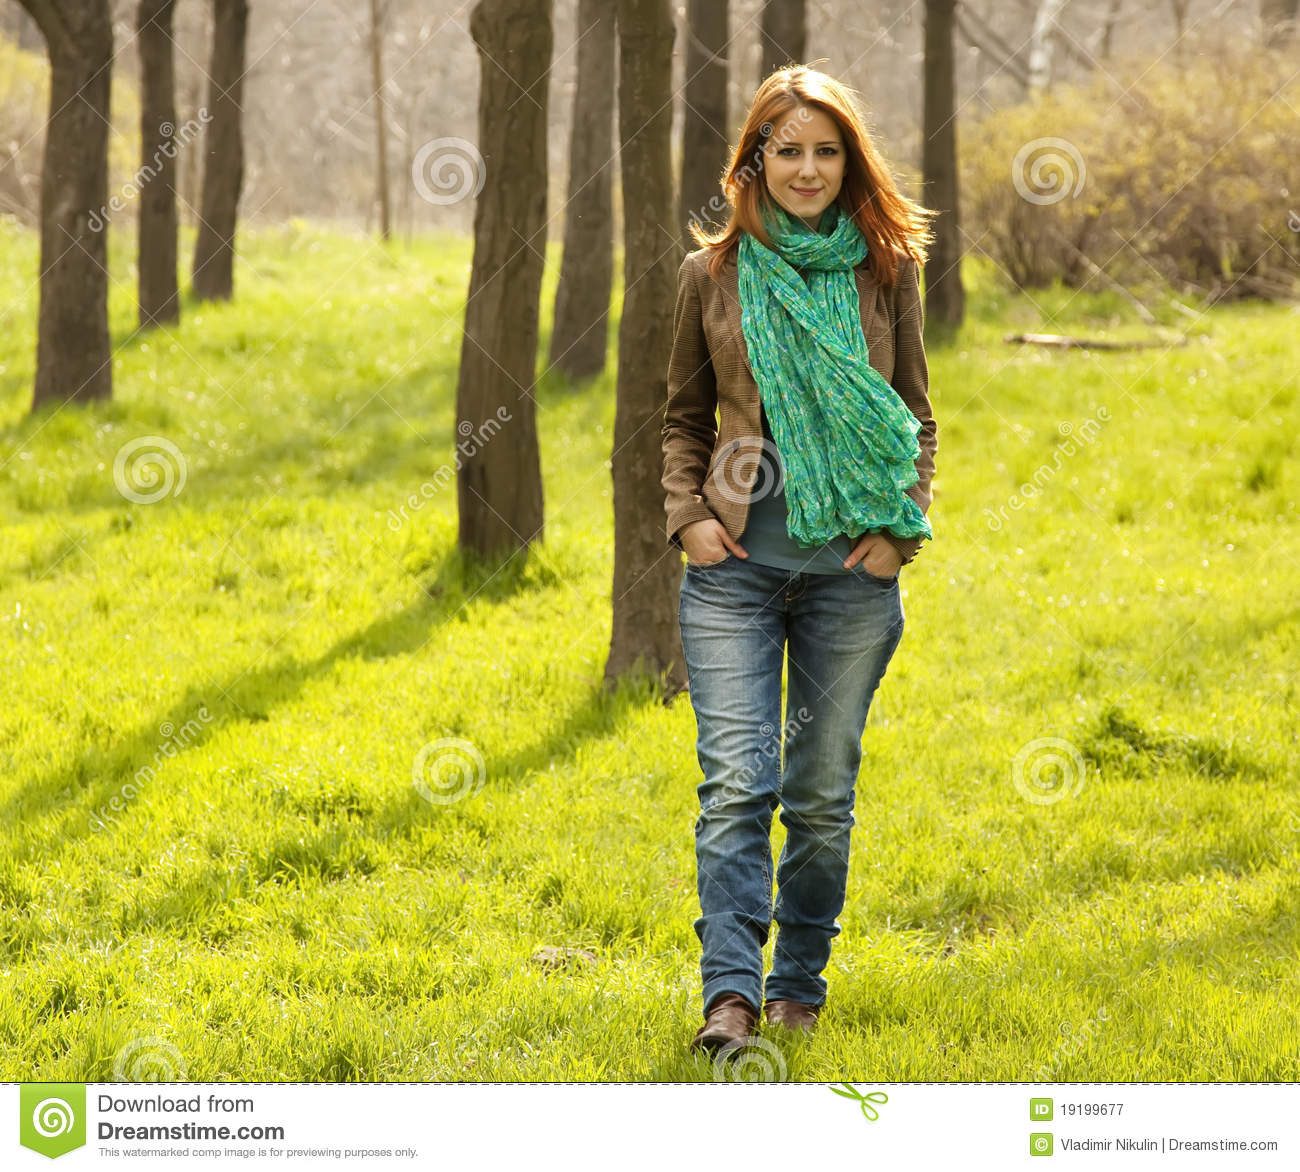 beautiful-girl-walking-green-grass-park-19199677.jpg